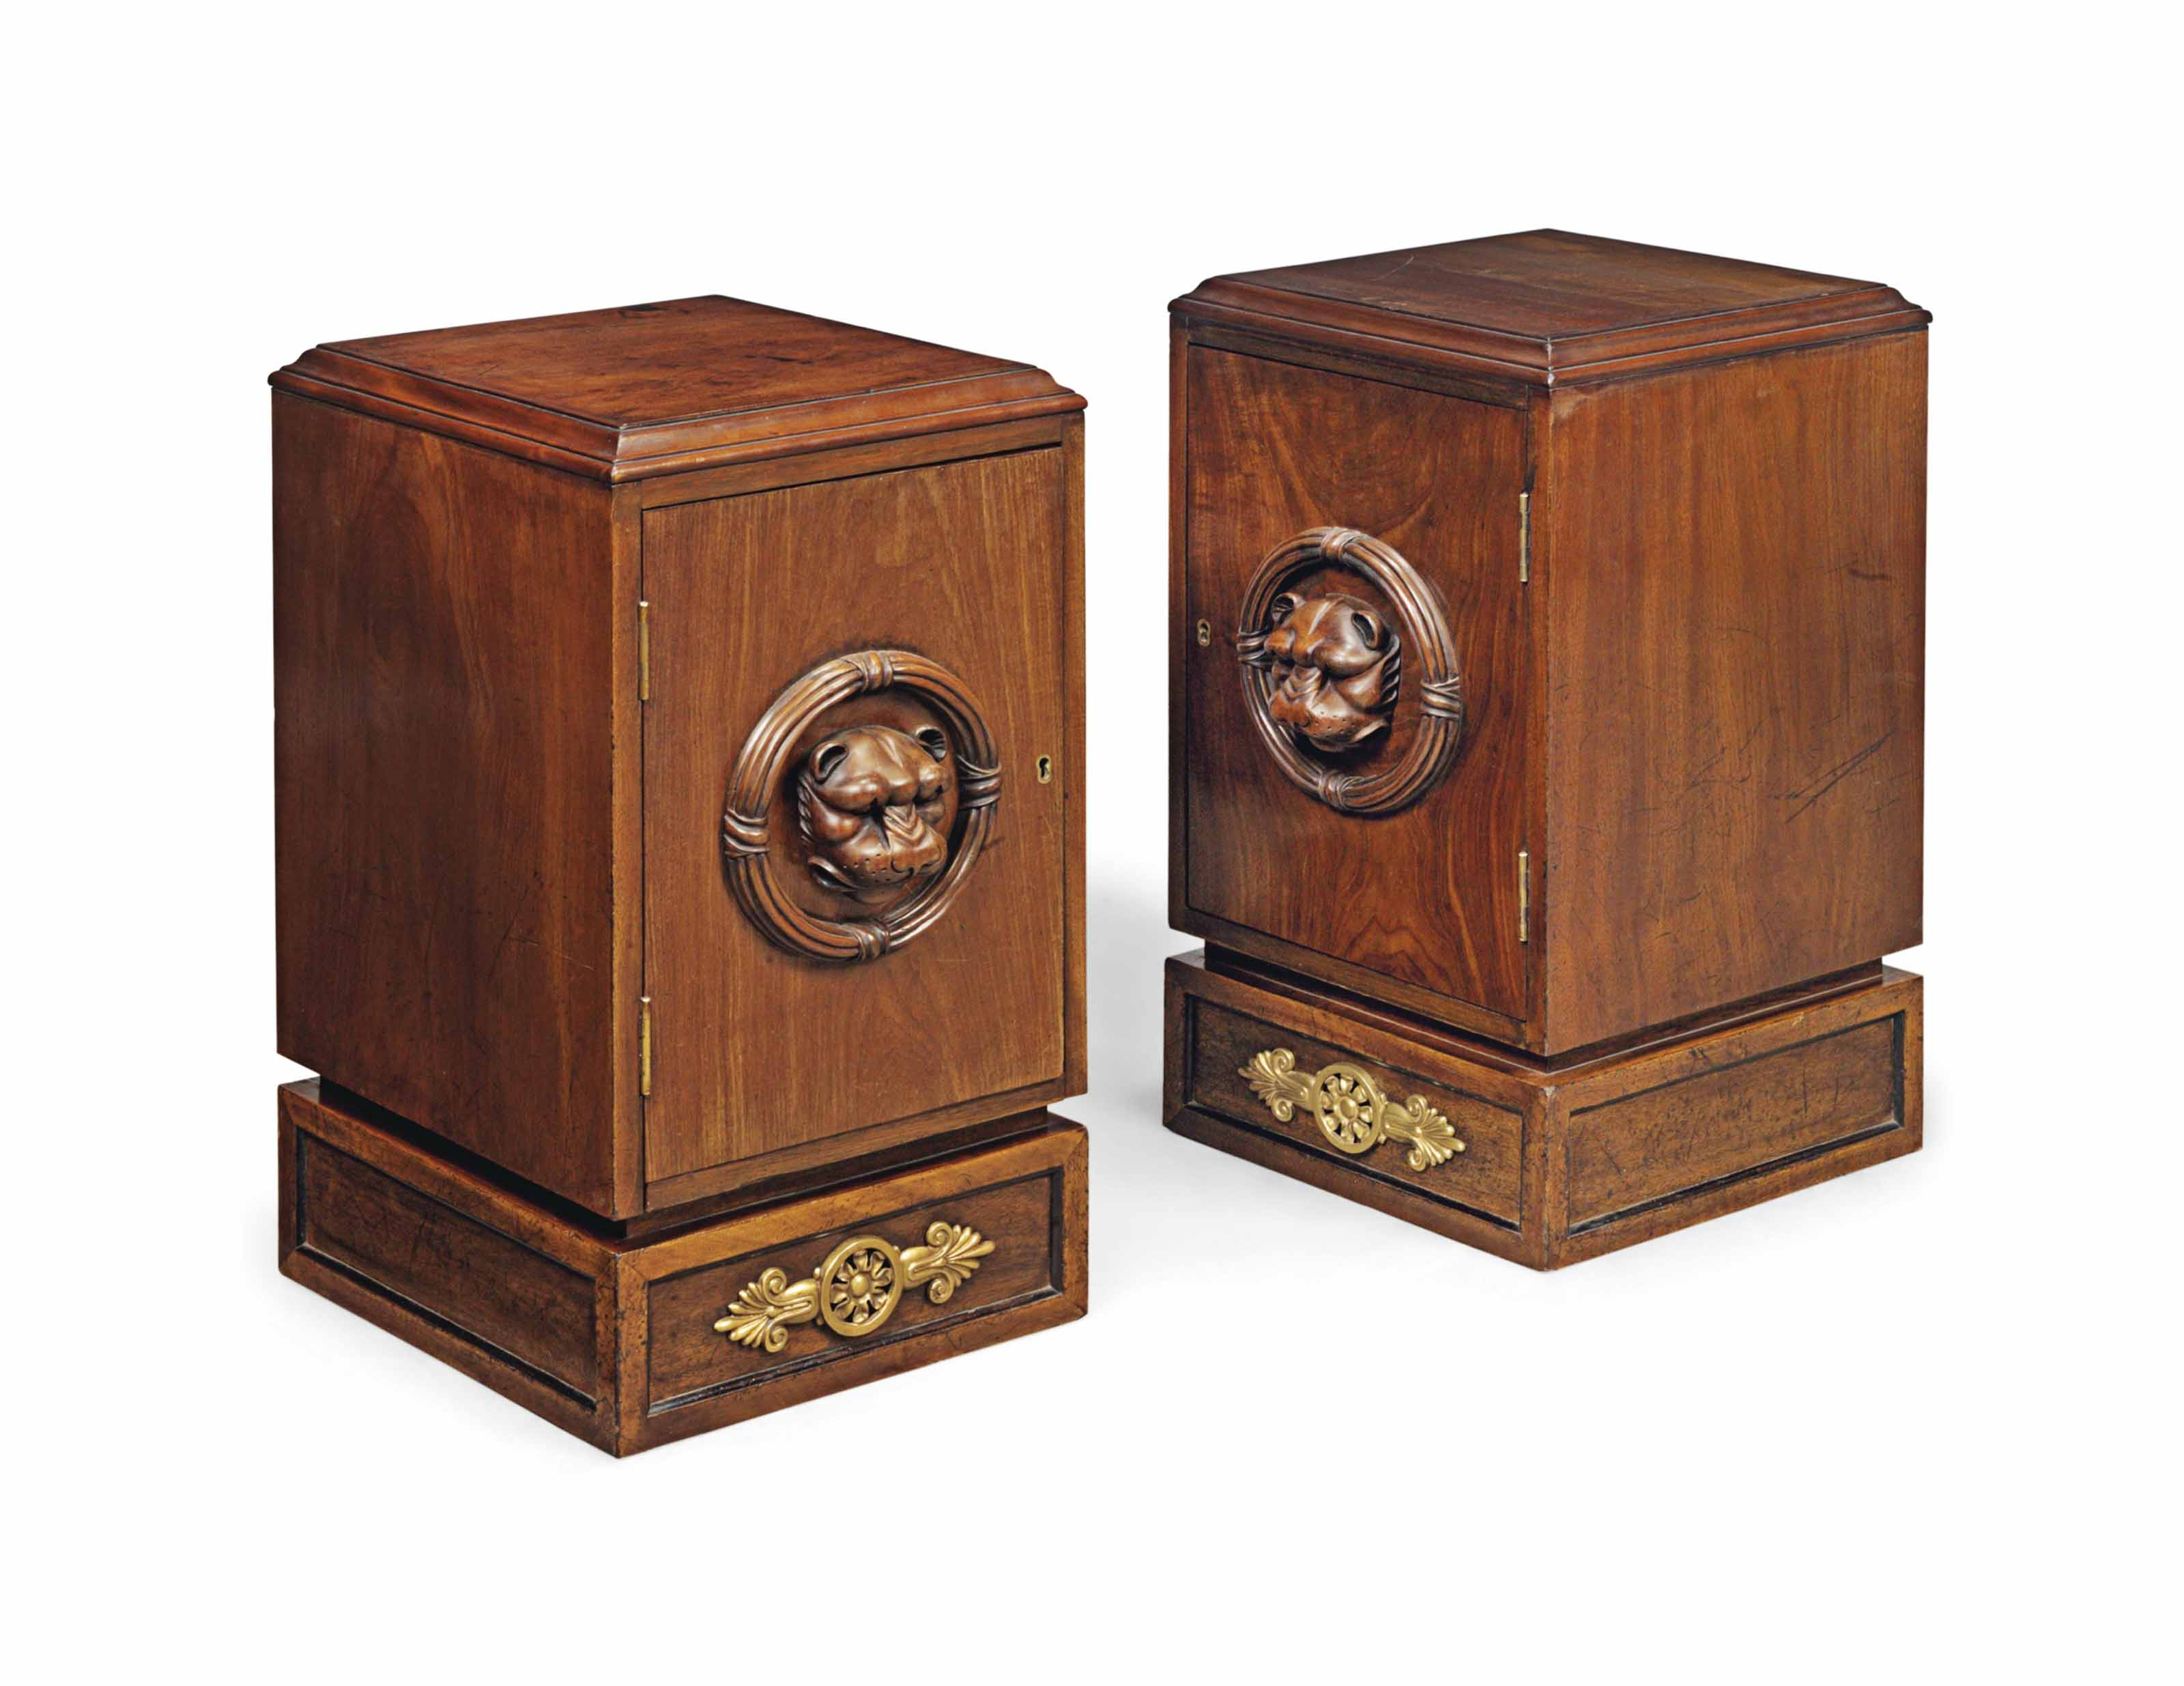 A PAIR OF BRASS-MOUNTED MAHOGANY BEDSIDE CABINETS